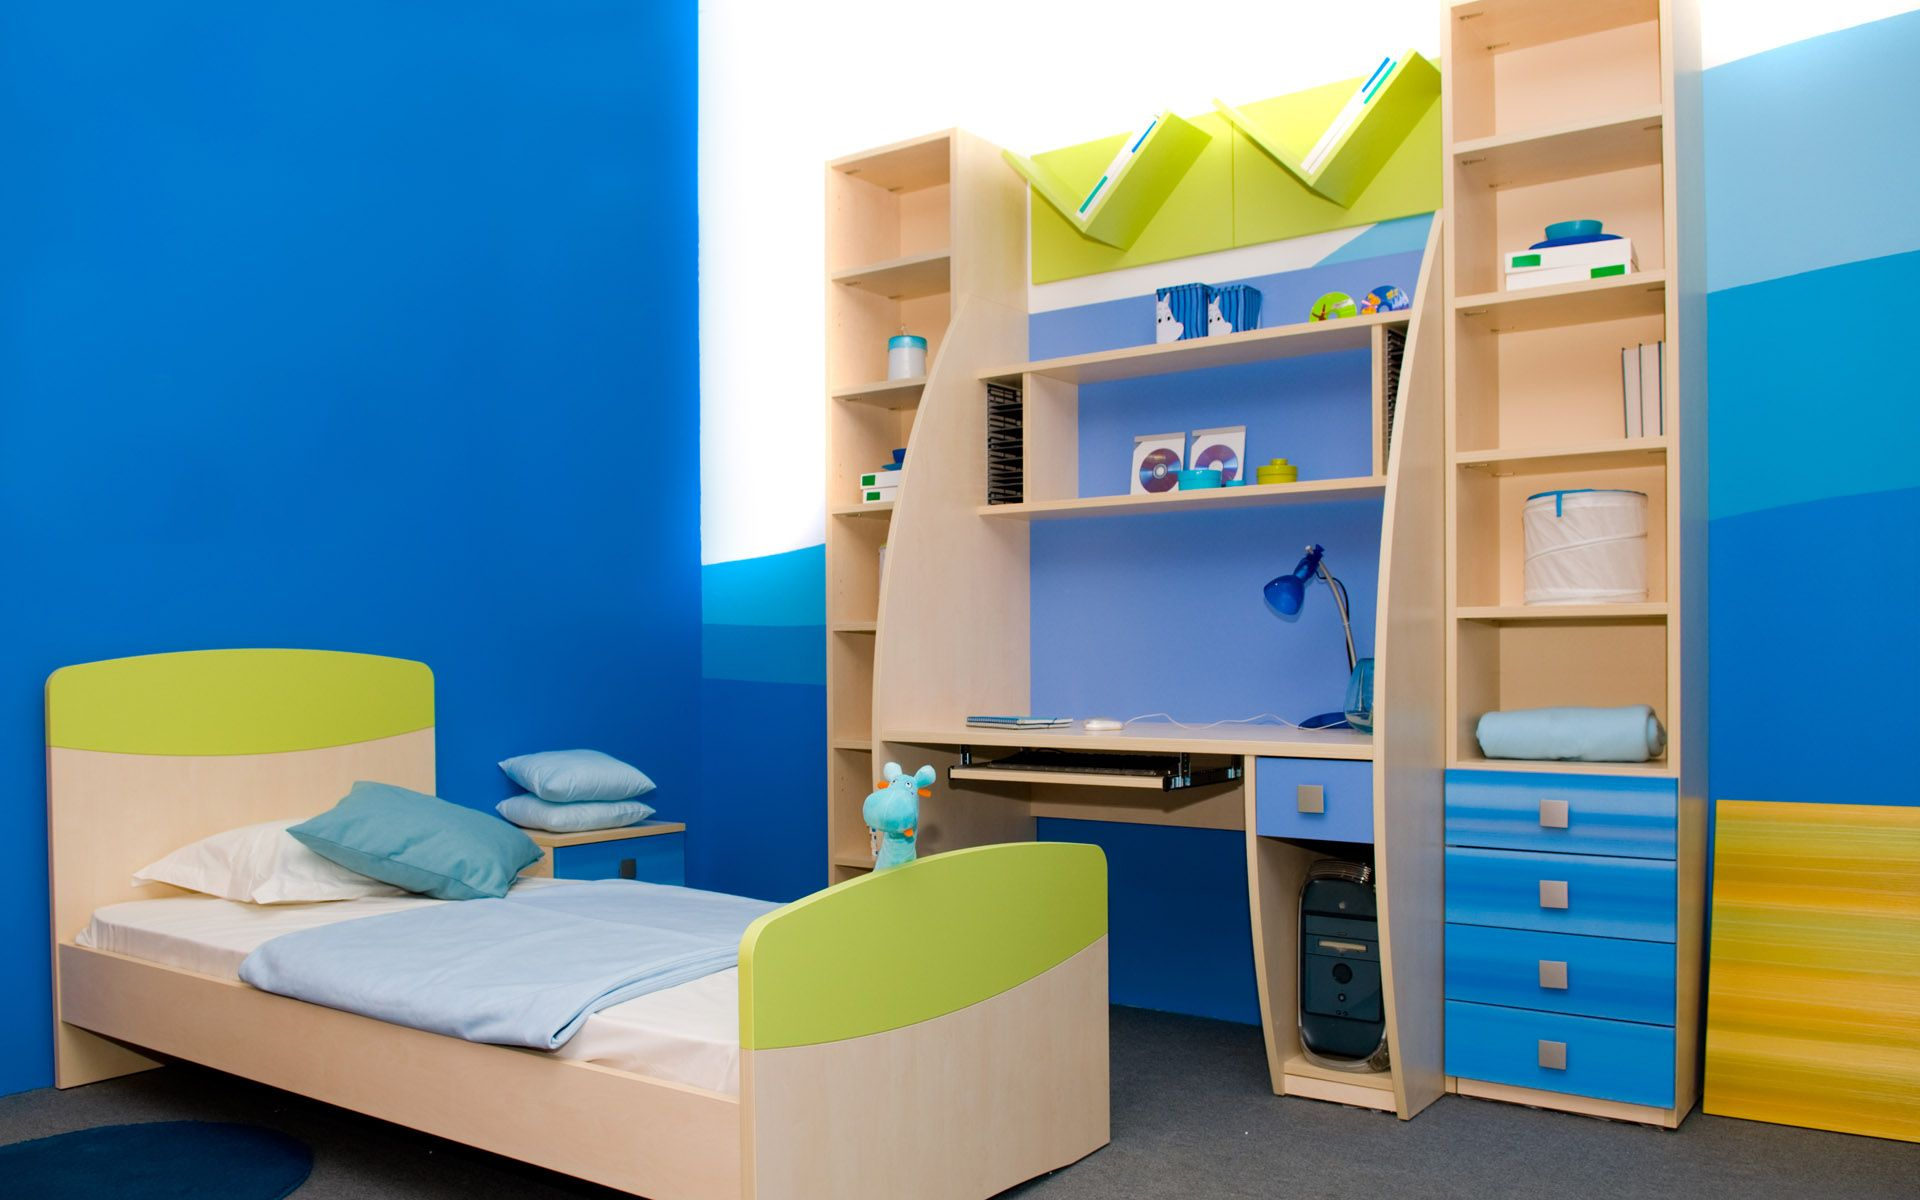 Kids Room 28 Elegant Kids Room Ideas Full Of Colors Room Wallpaper